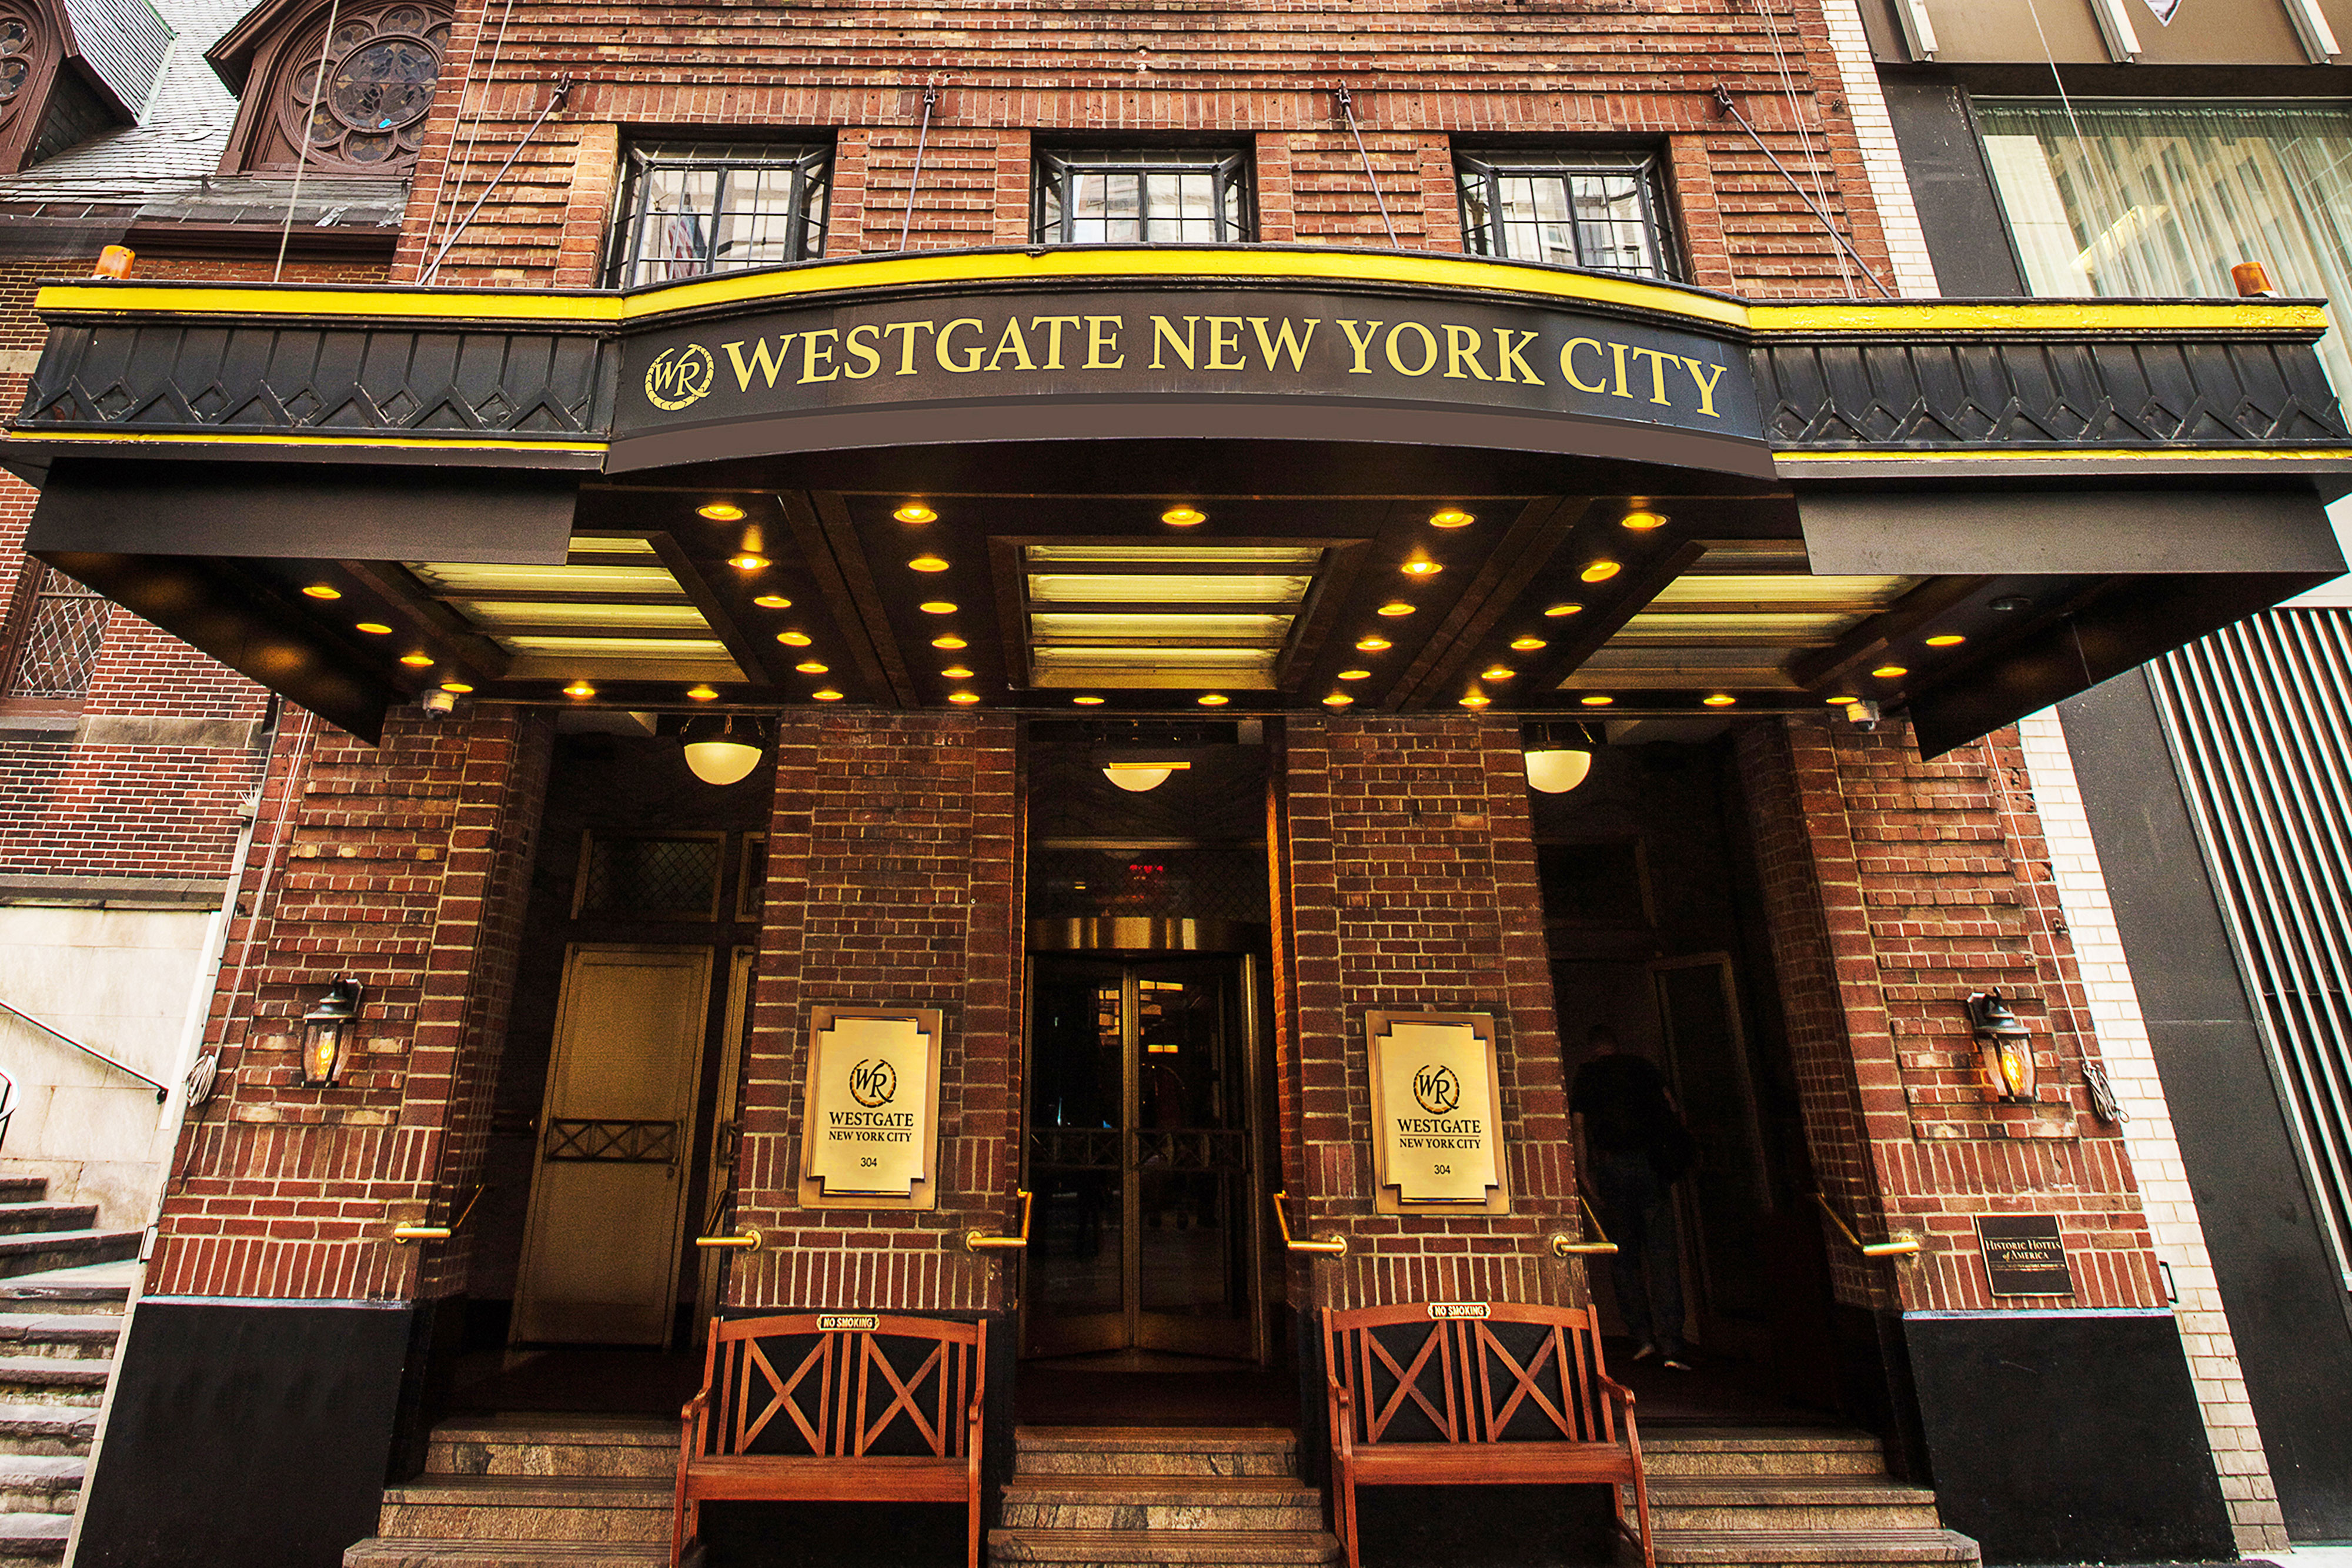 NYC Staycation Hotel Deals -Westgate NYC